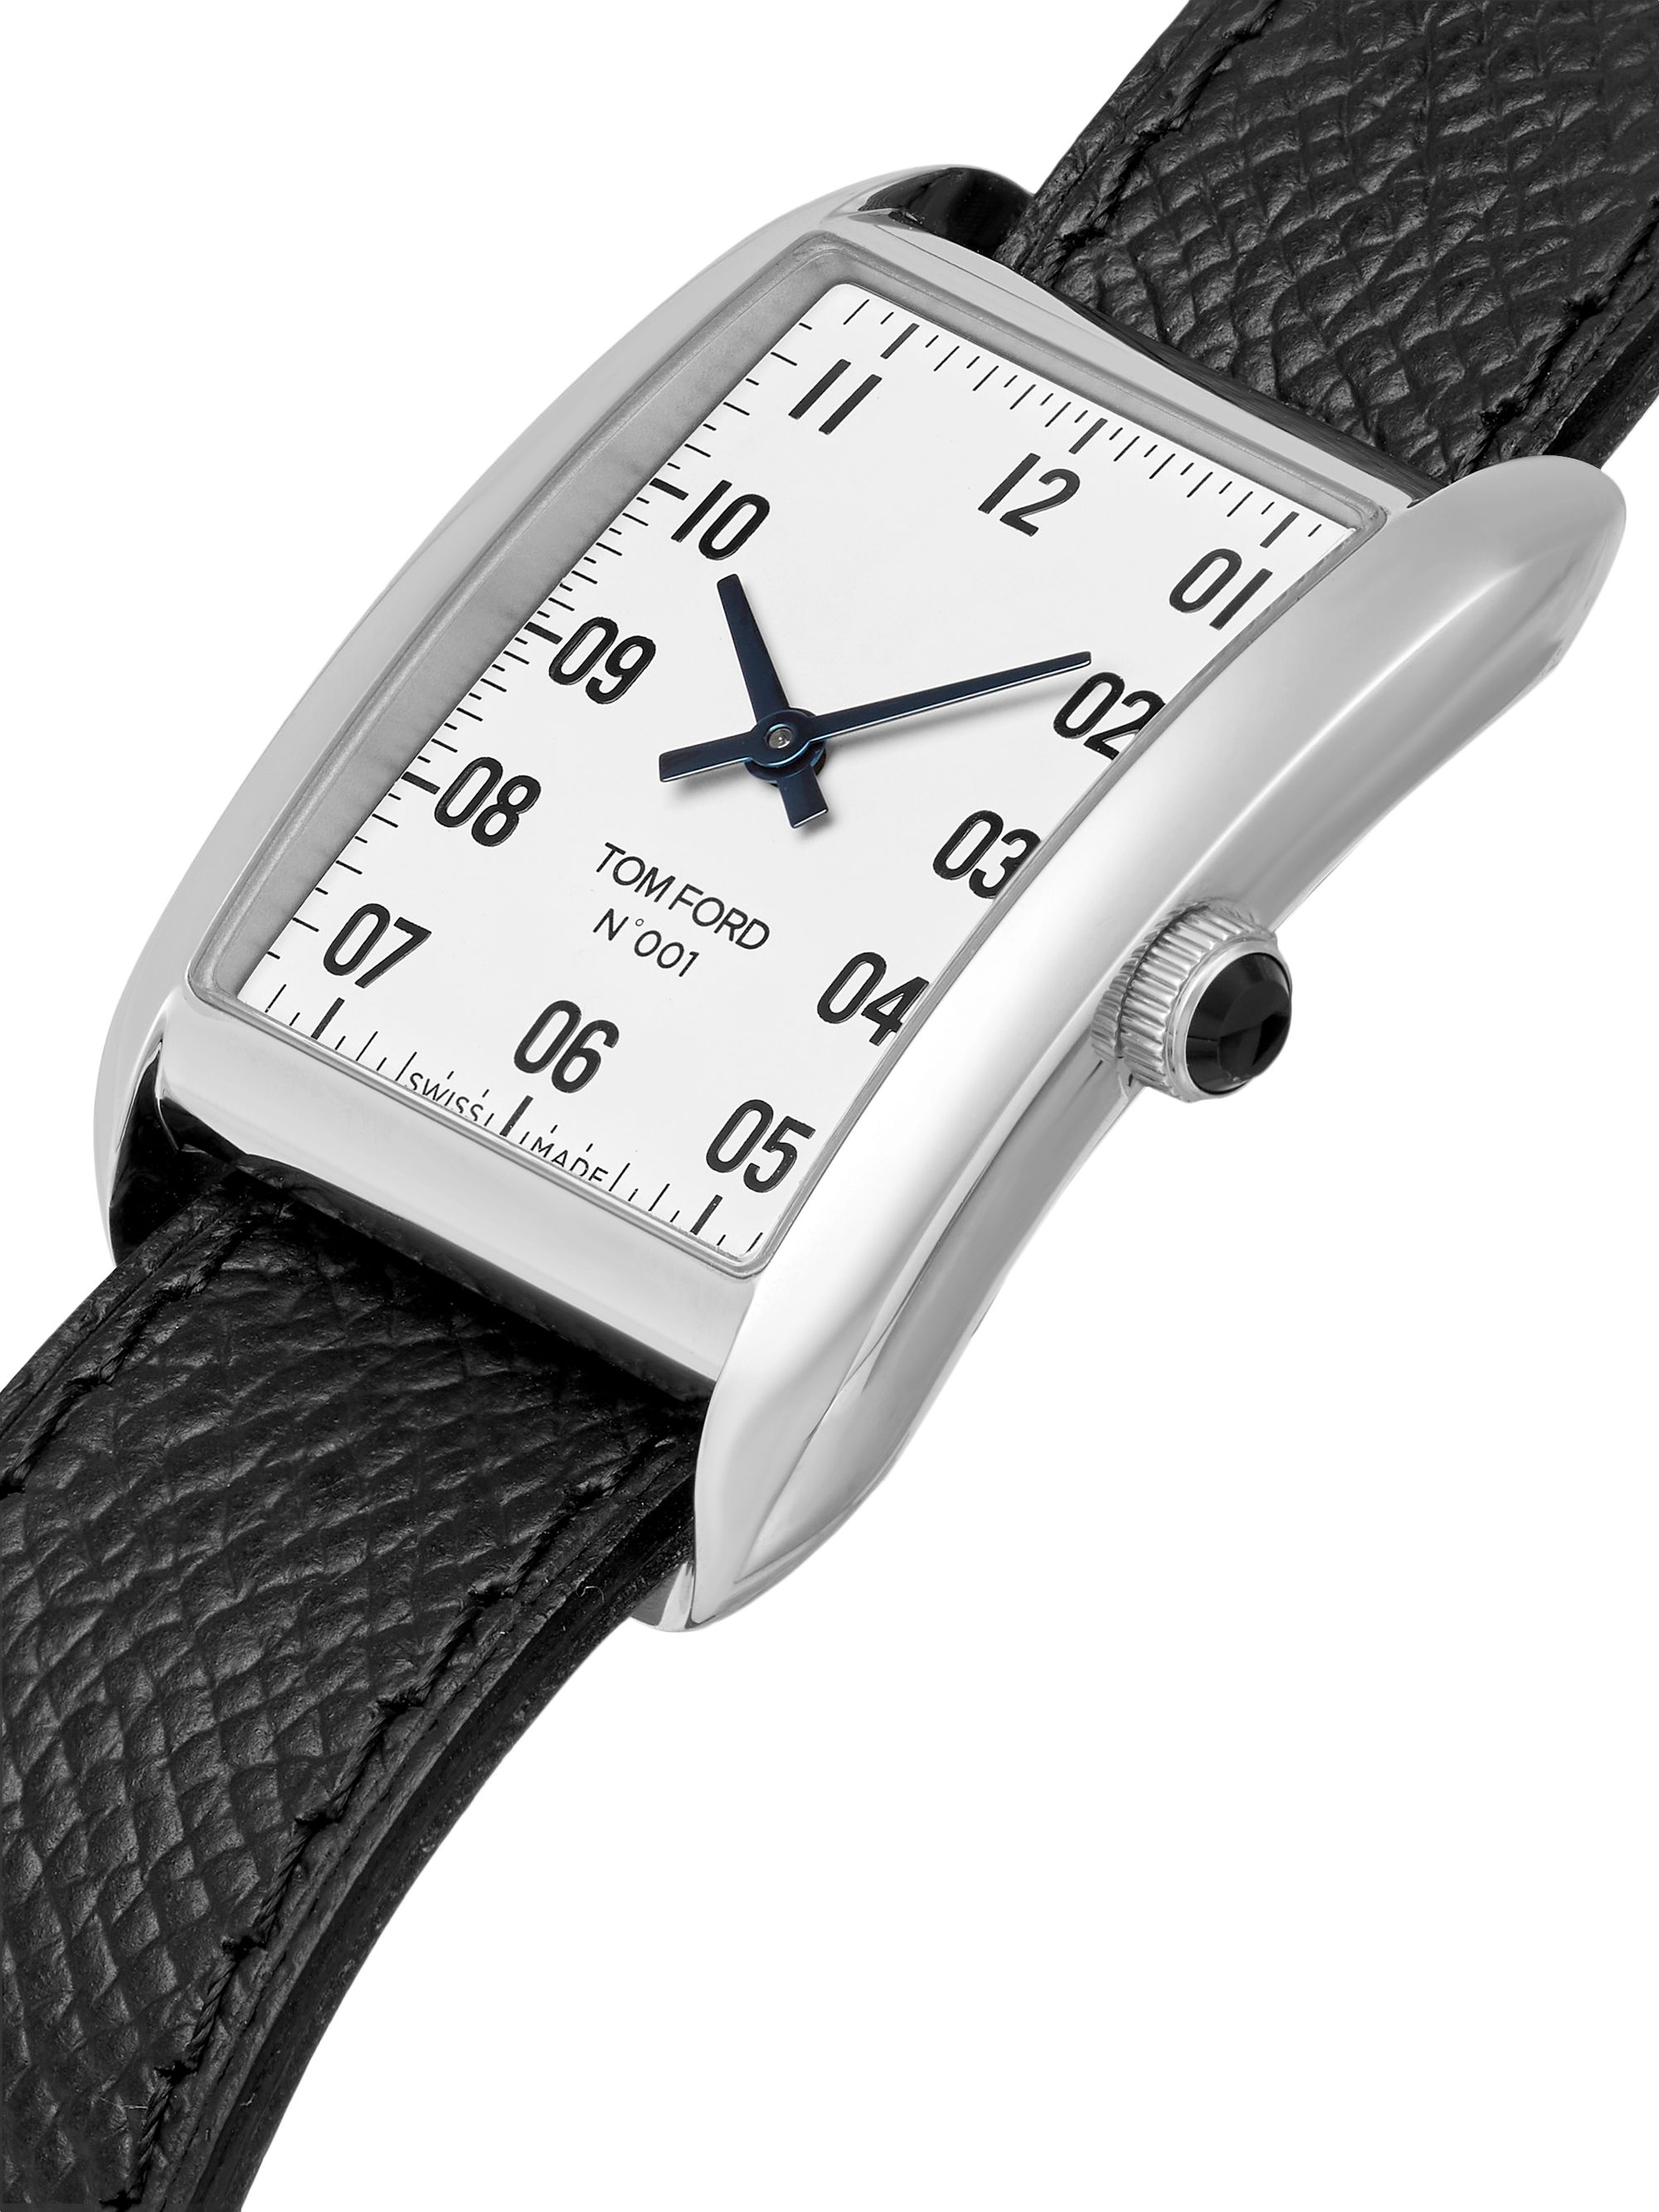 Tom Ford Timepieces 001 Stainless Steel and Pebble-Grain Leather Watch